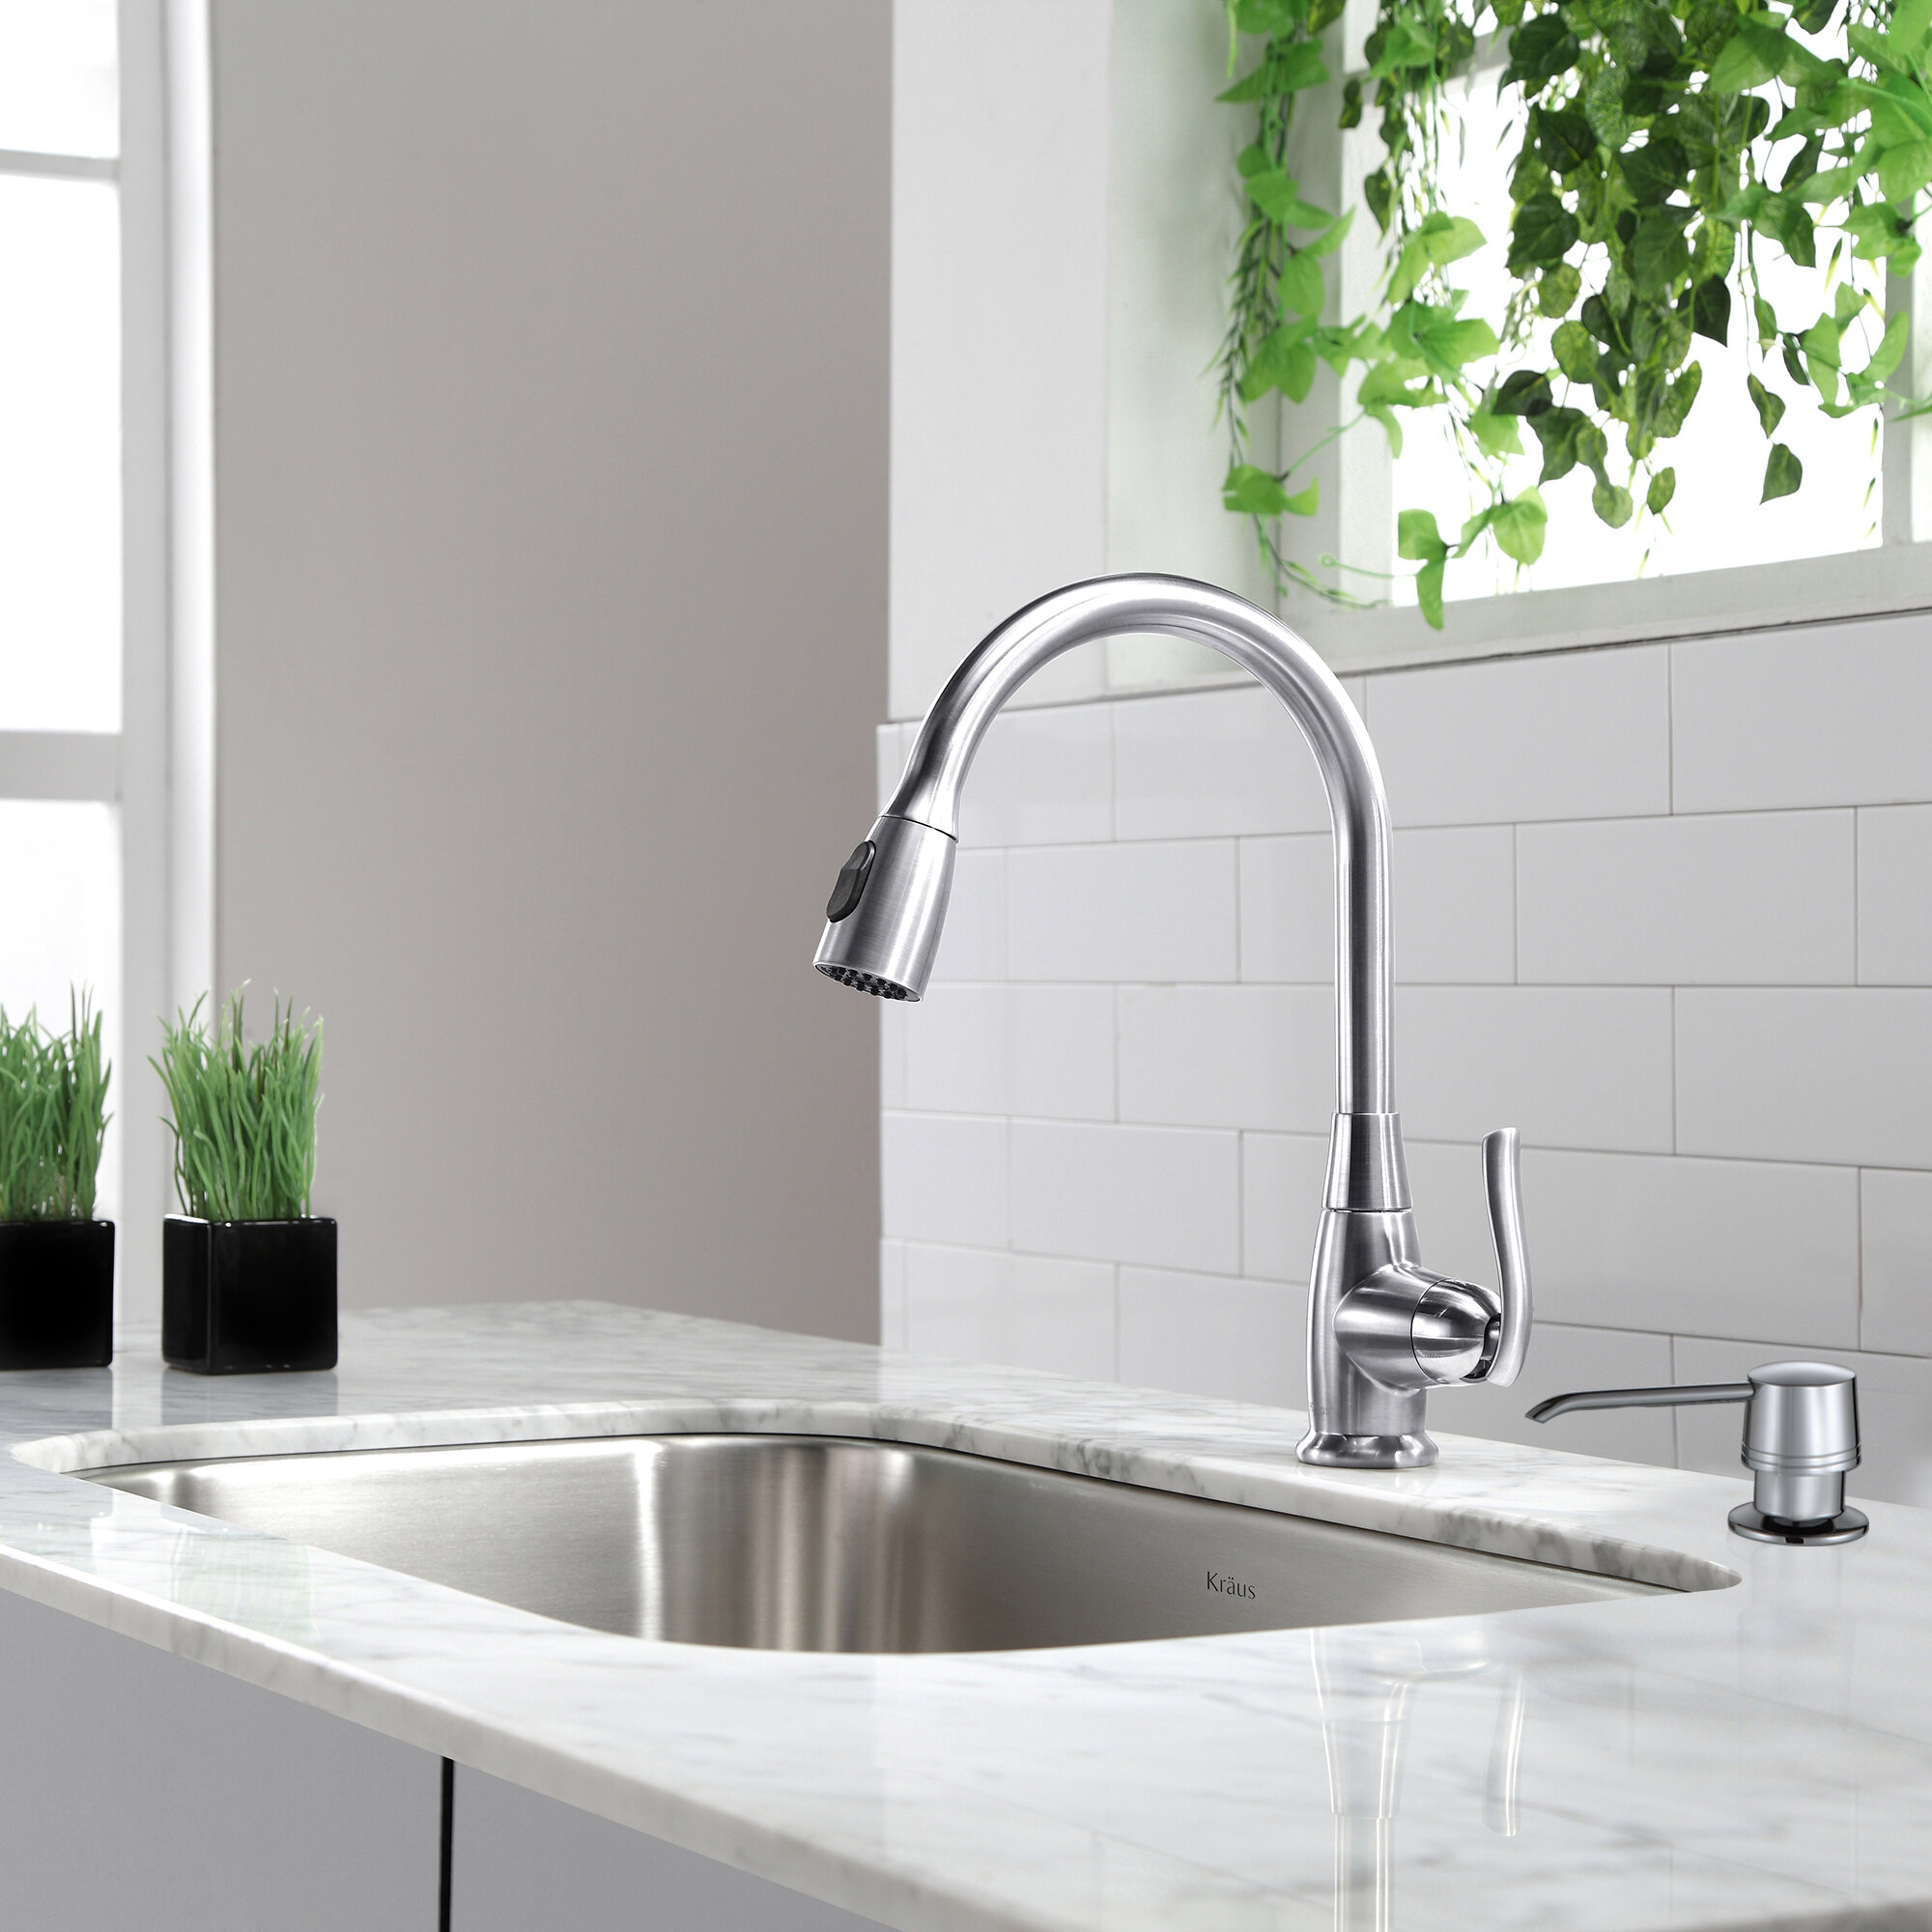 no sink rated peel size touch colors vidmar with faucets popular drawer images countertop reviews faucet apron cabinet metal manufacturers most and stick top tiles filing tag kitchens of laminate backsplash dimensions full white kitchen cabinets